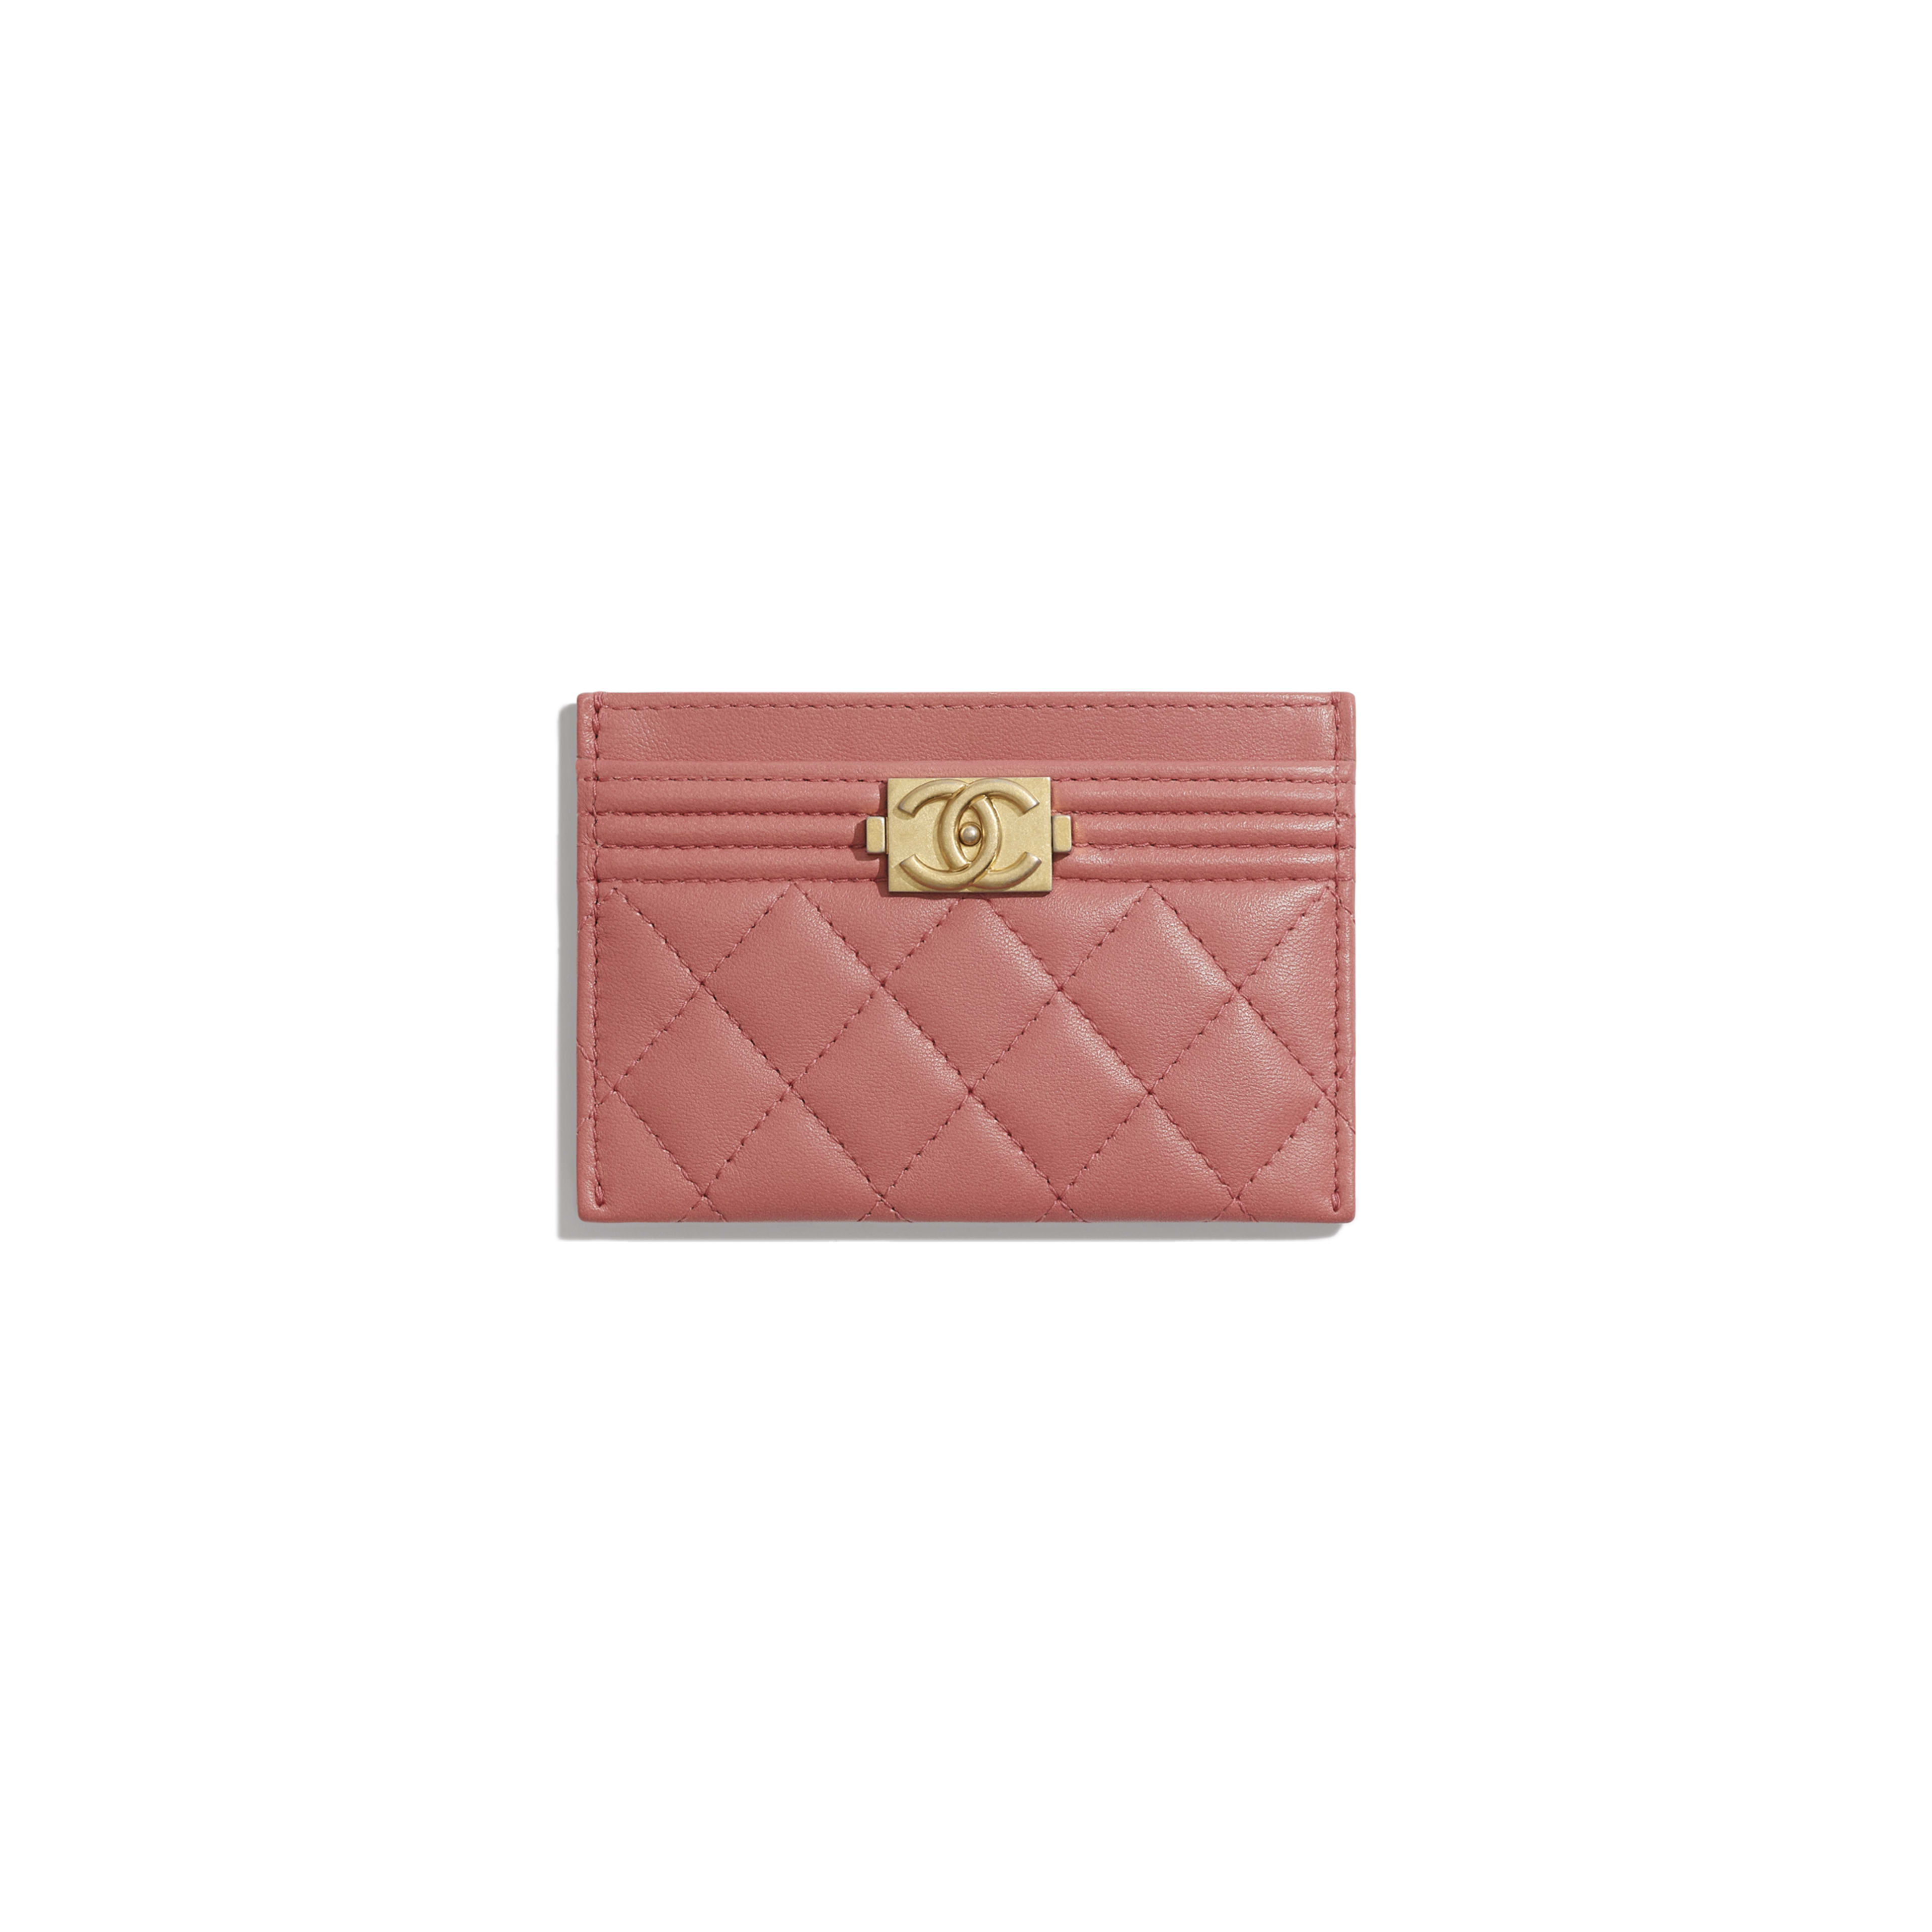 BOY CHANEL Card Holder - Pink - Lambskin - Default view - see full sized version